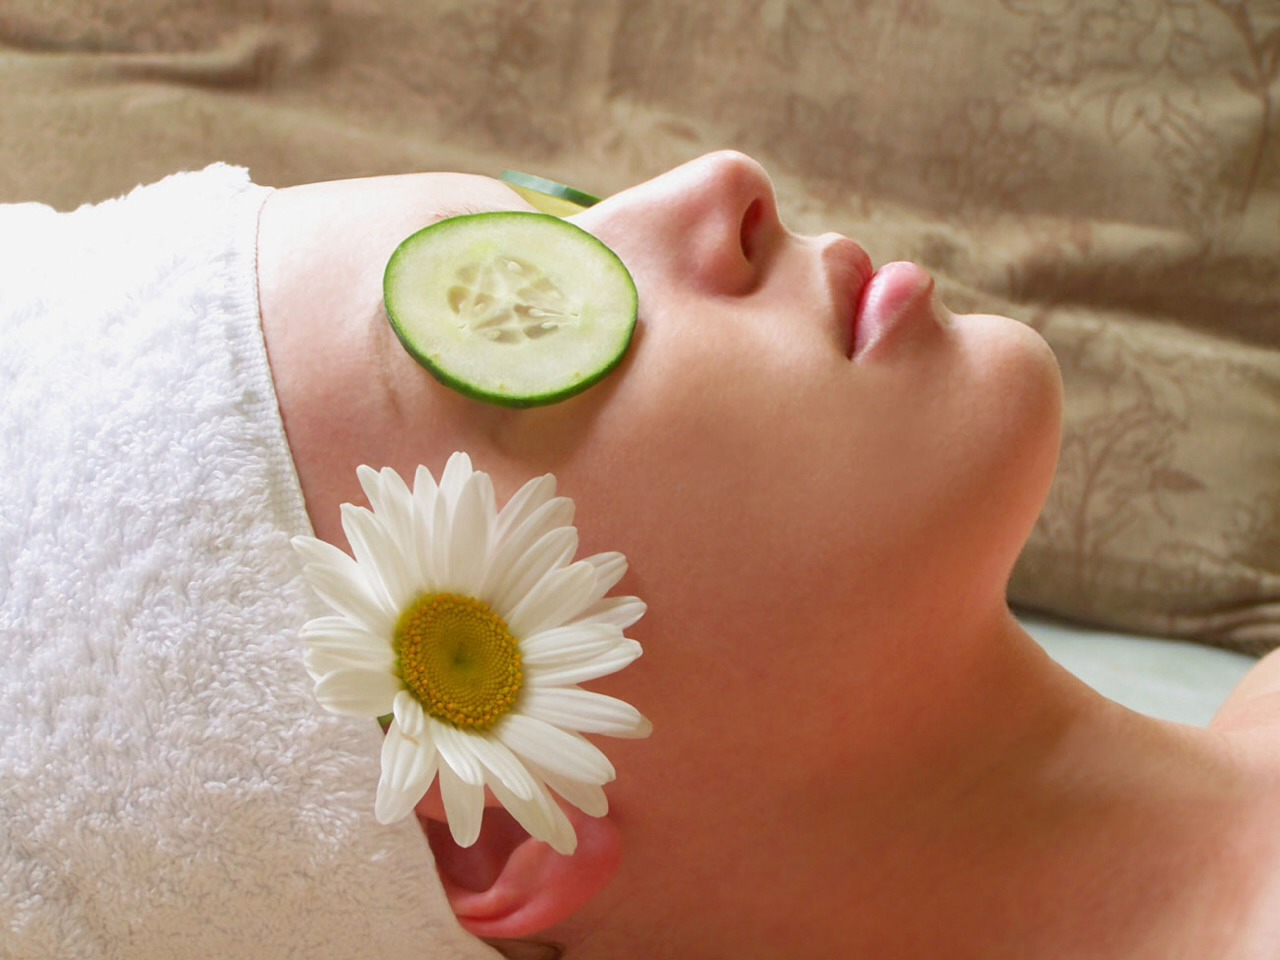 Getting a facial? Doing it yourself? Make the most of your experience with these trusty tips.